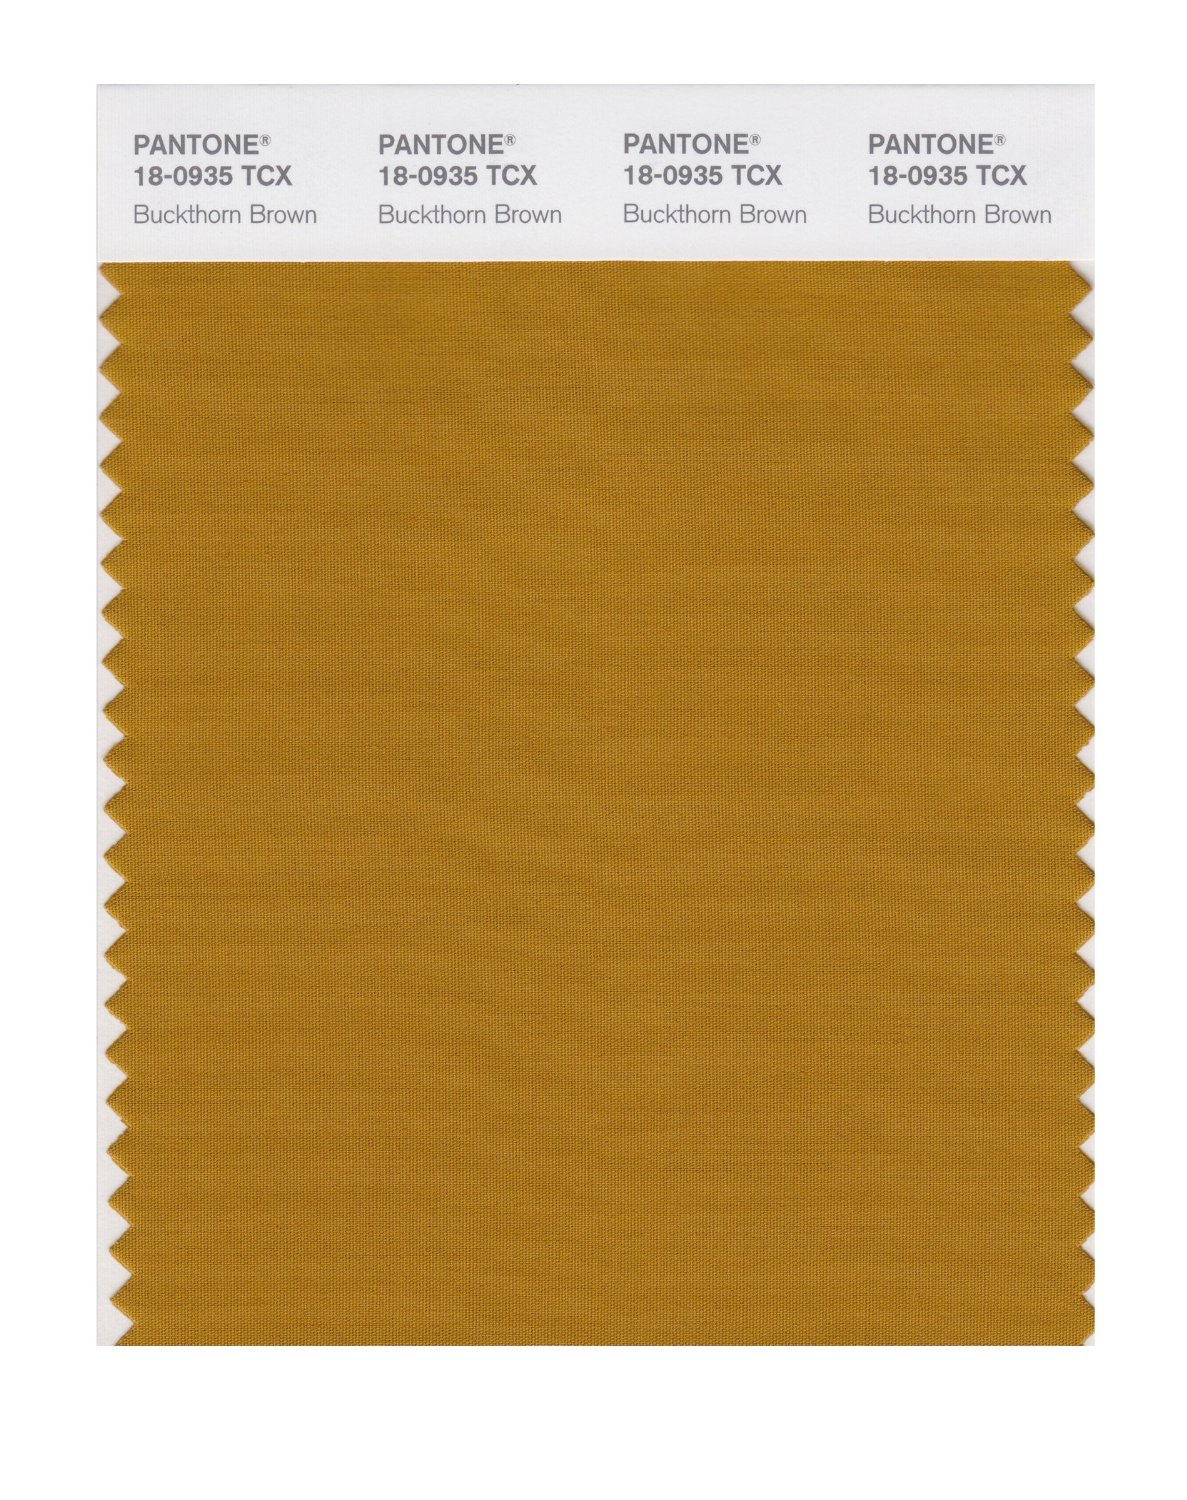 Pantone Smart Swatch 18-0935 Buckthorn Brown